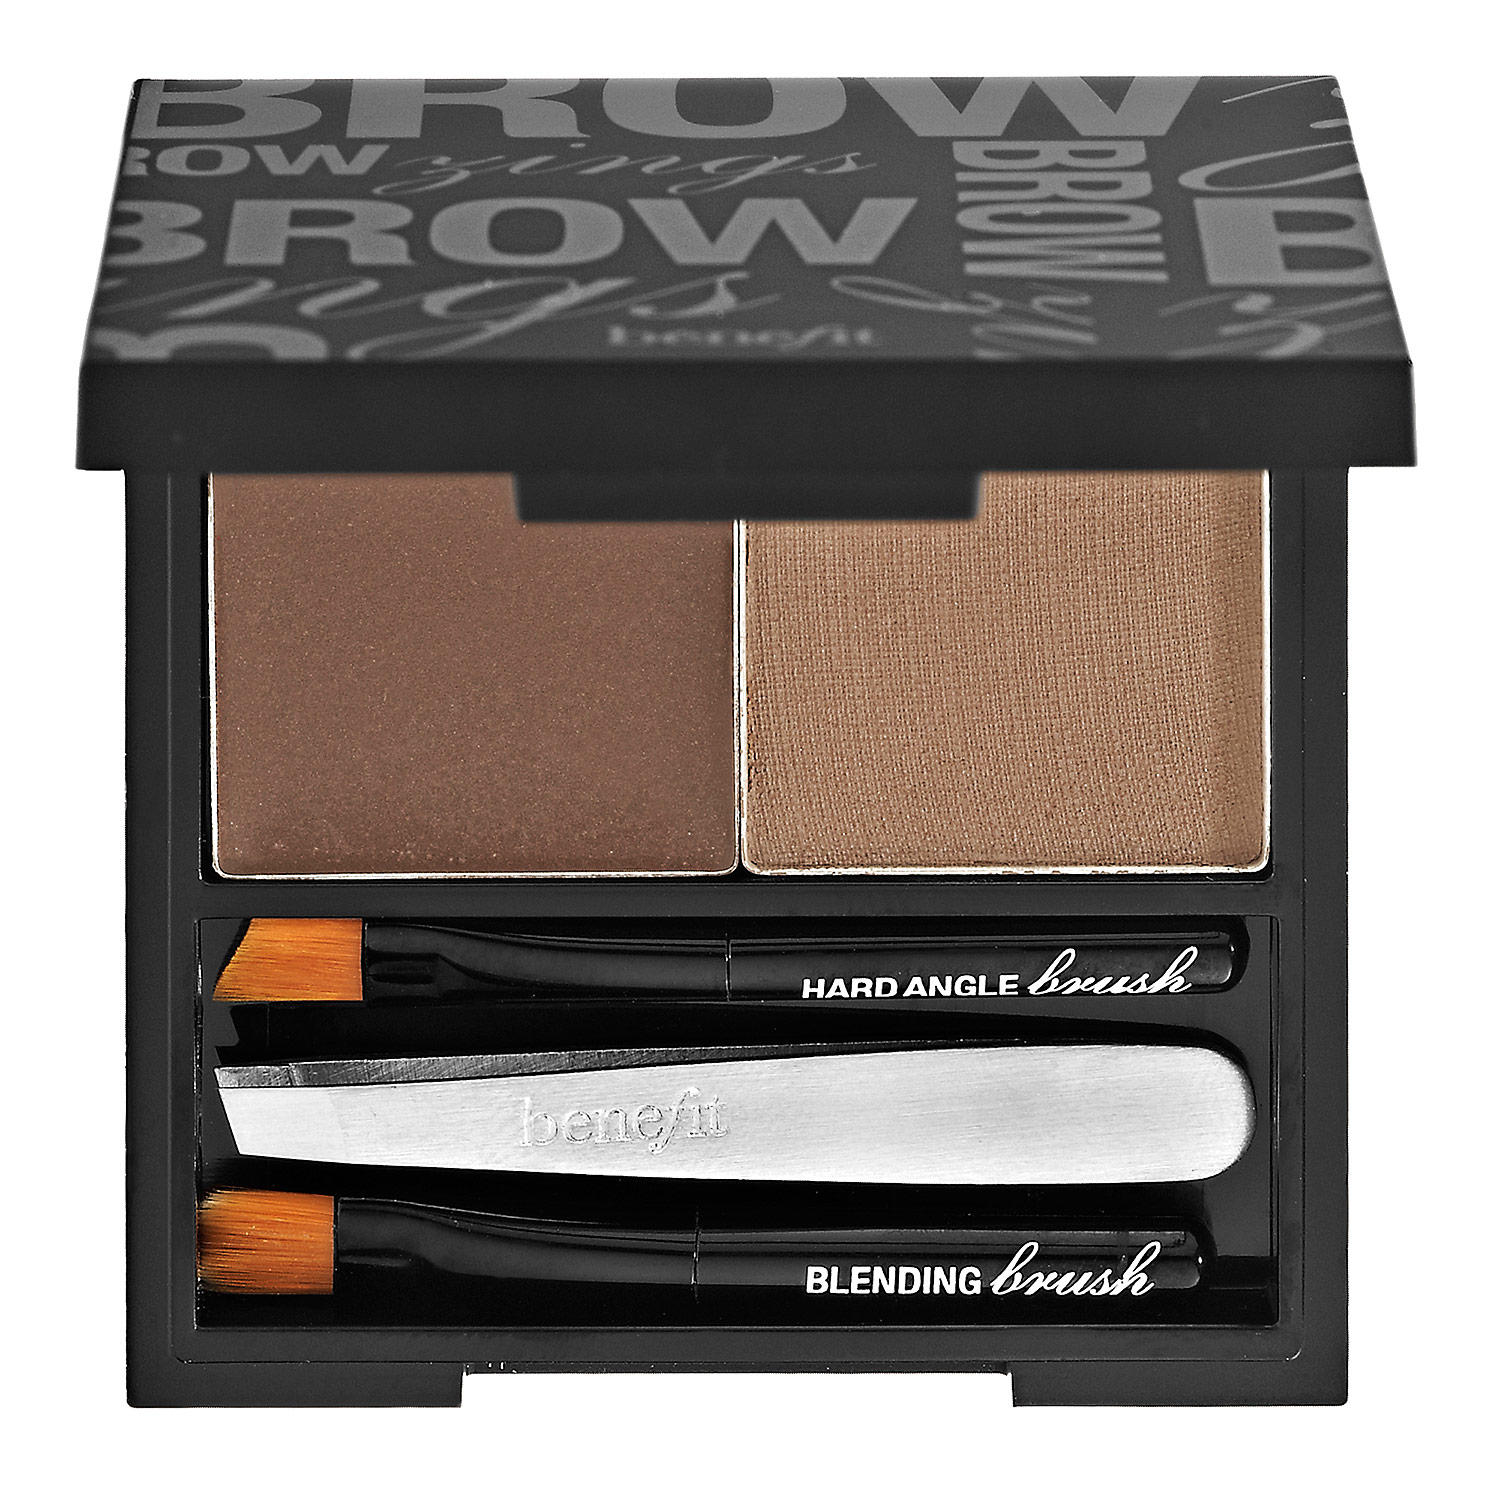 Benefit Brow Zings Brow Shaping Kit Light